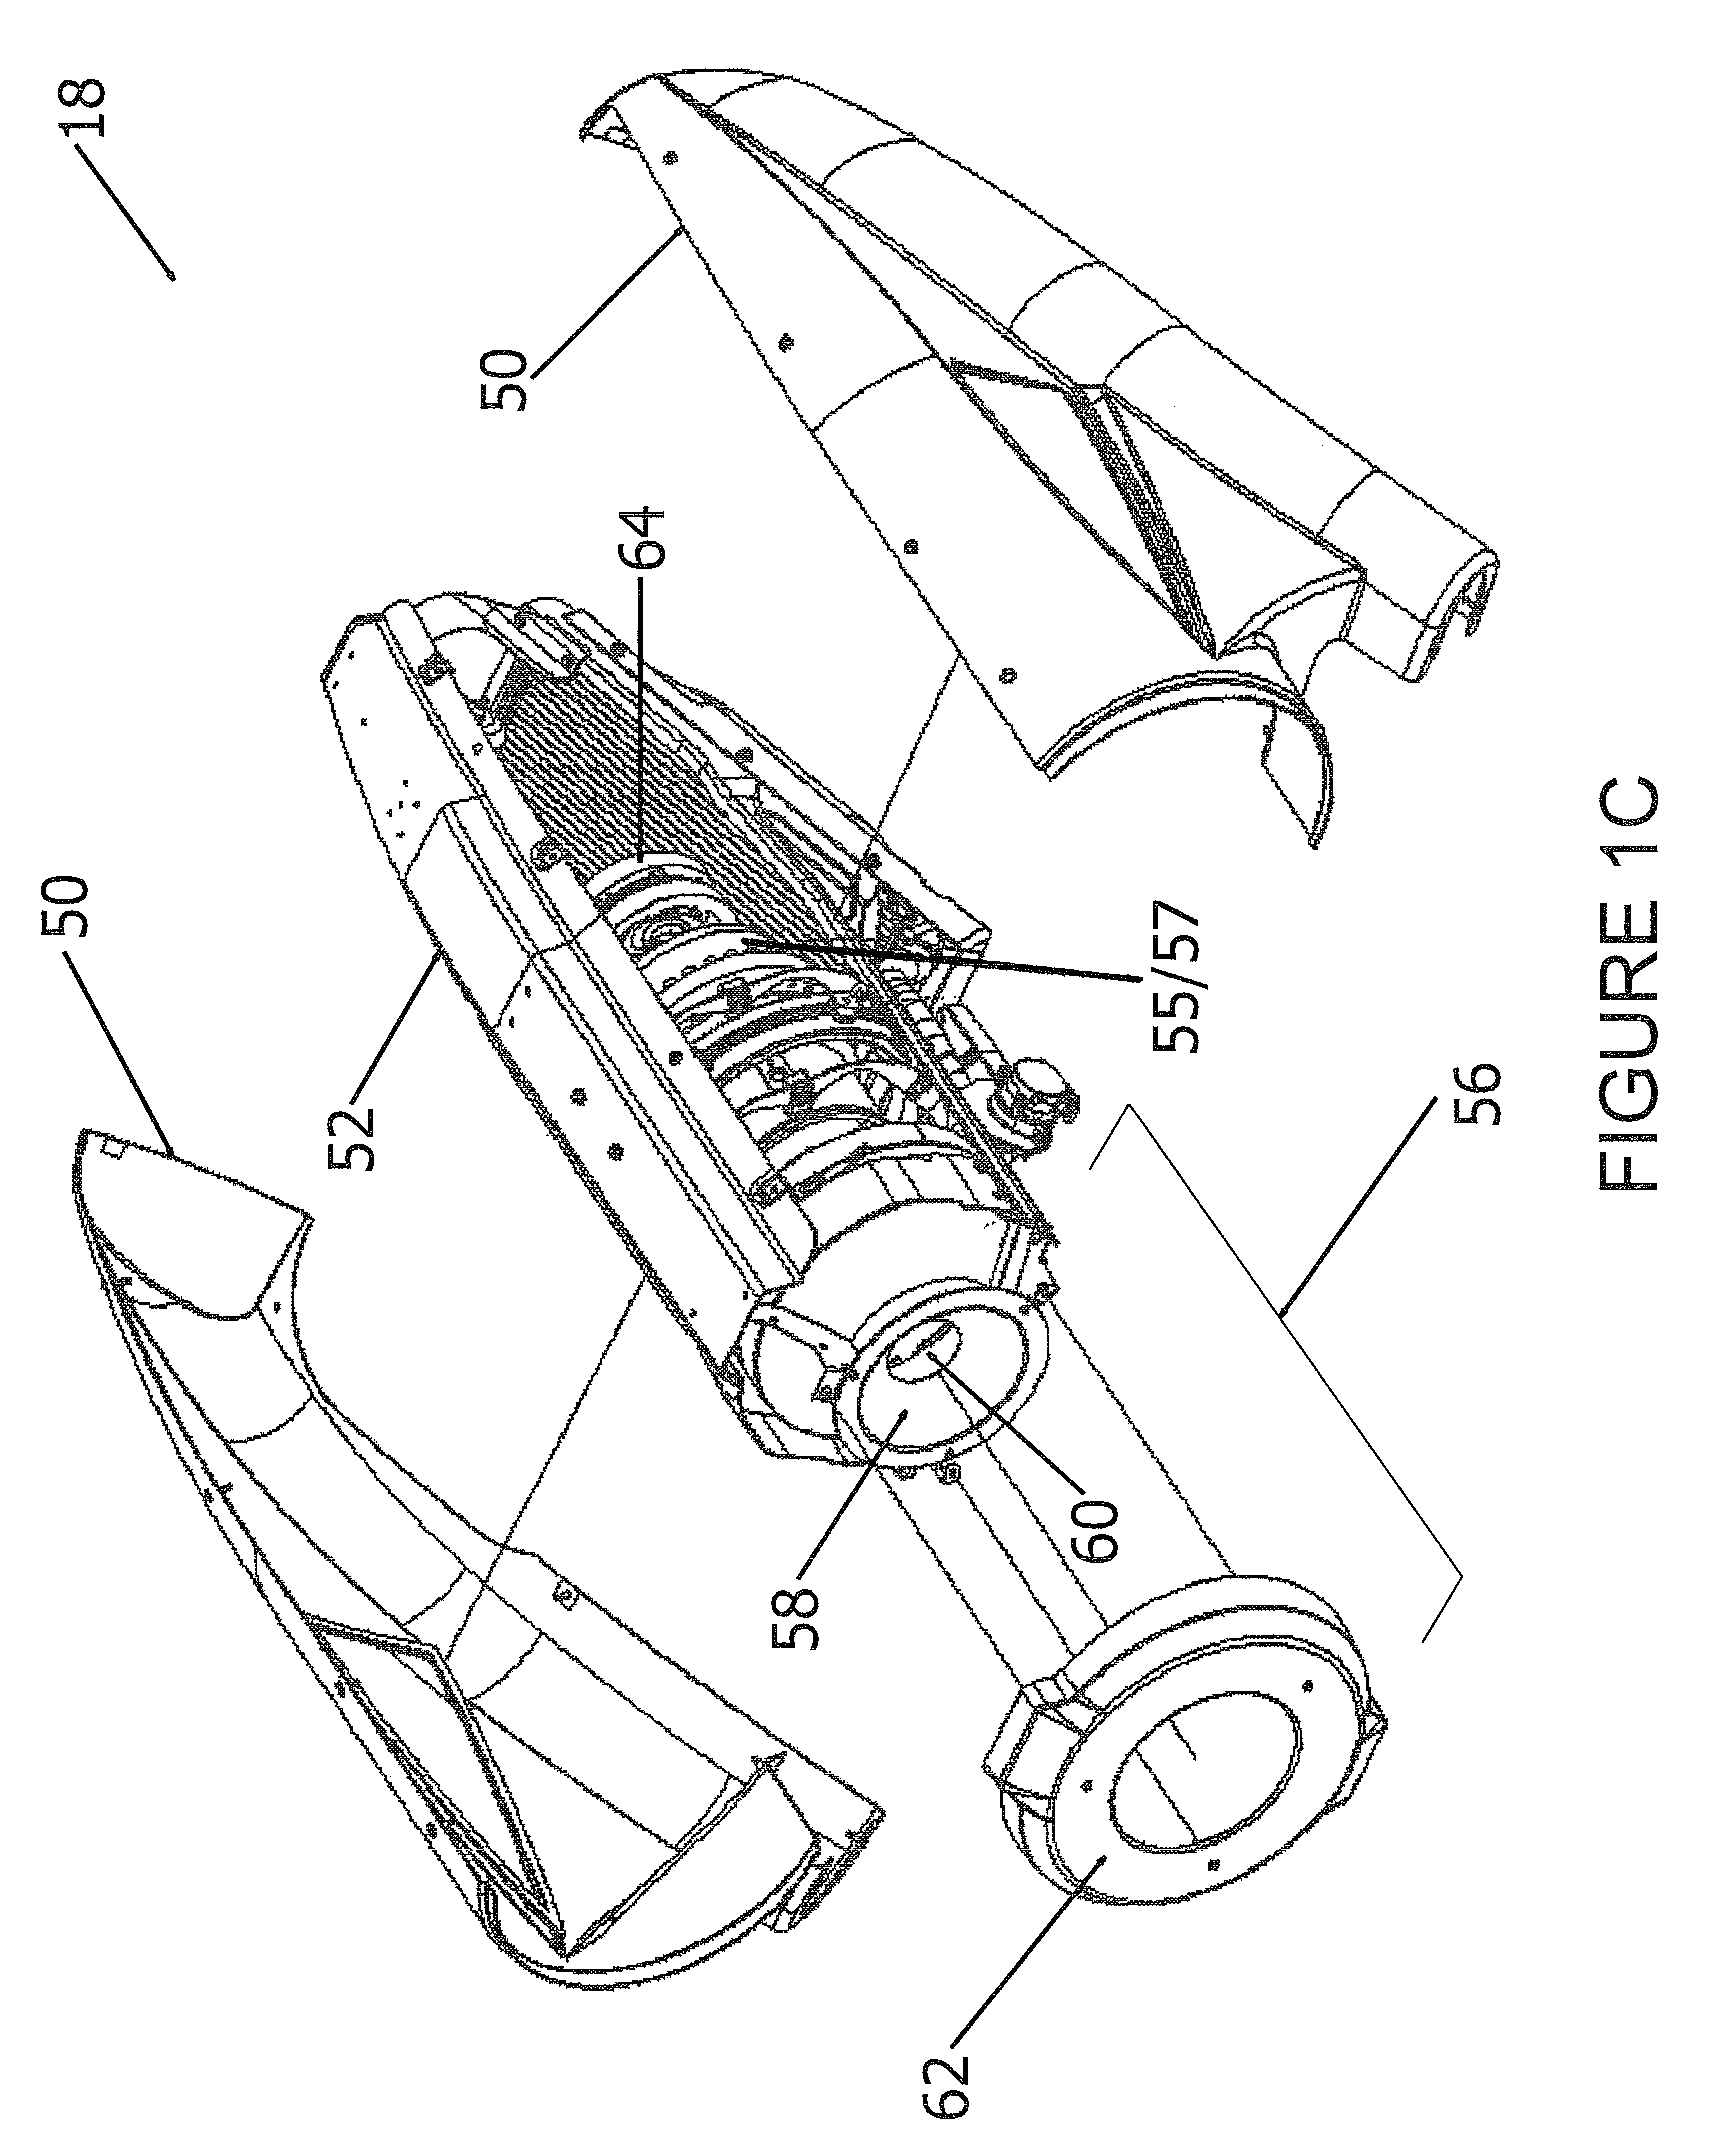 medium resolution of stirling engine systems apparatus and methods us 8151568 b2 patent drawing